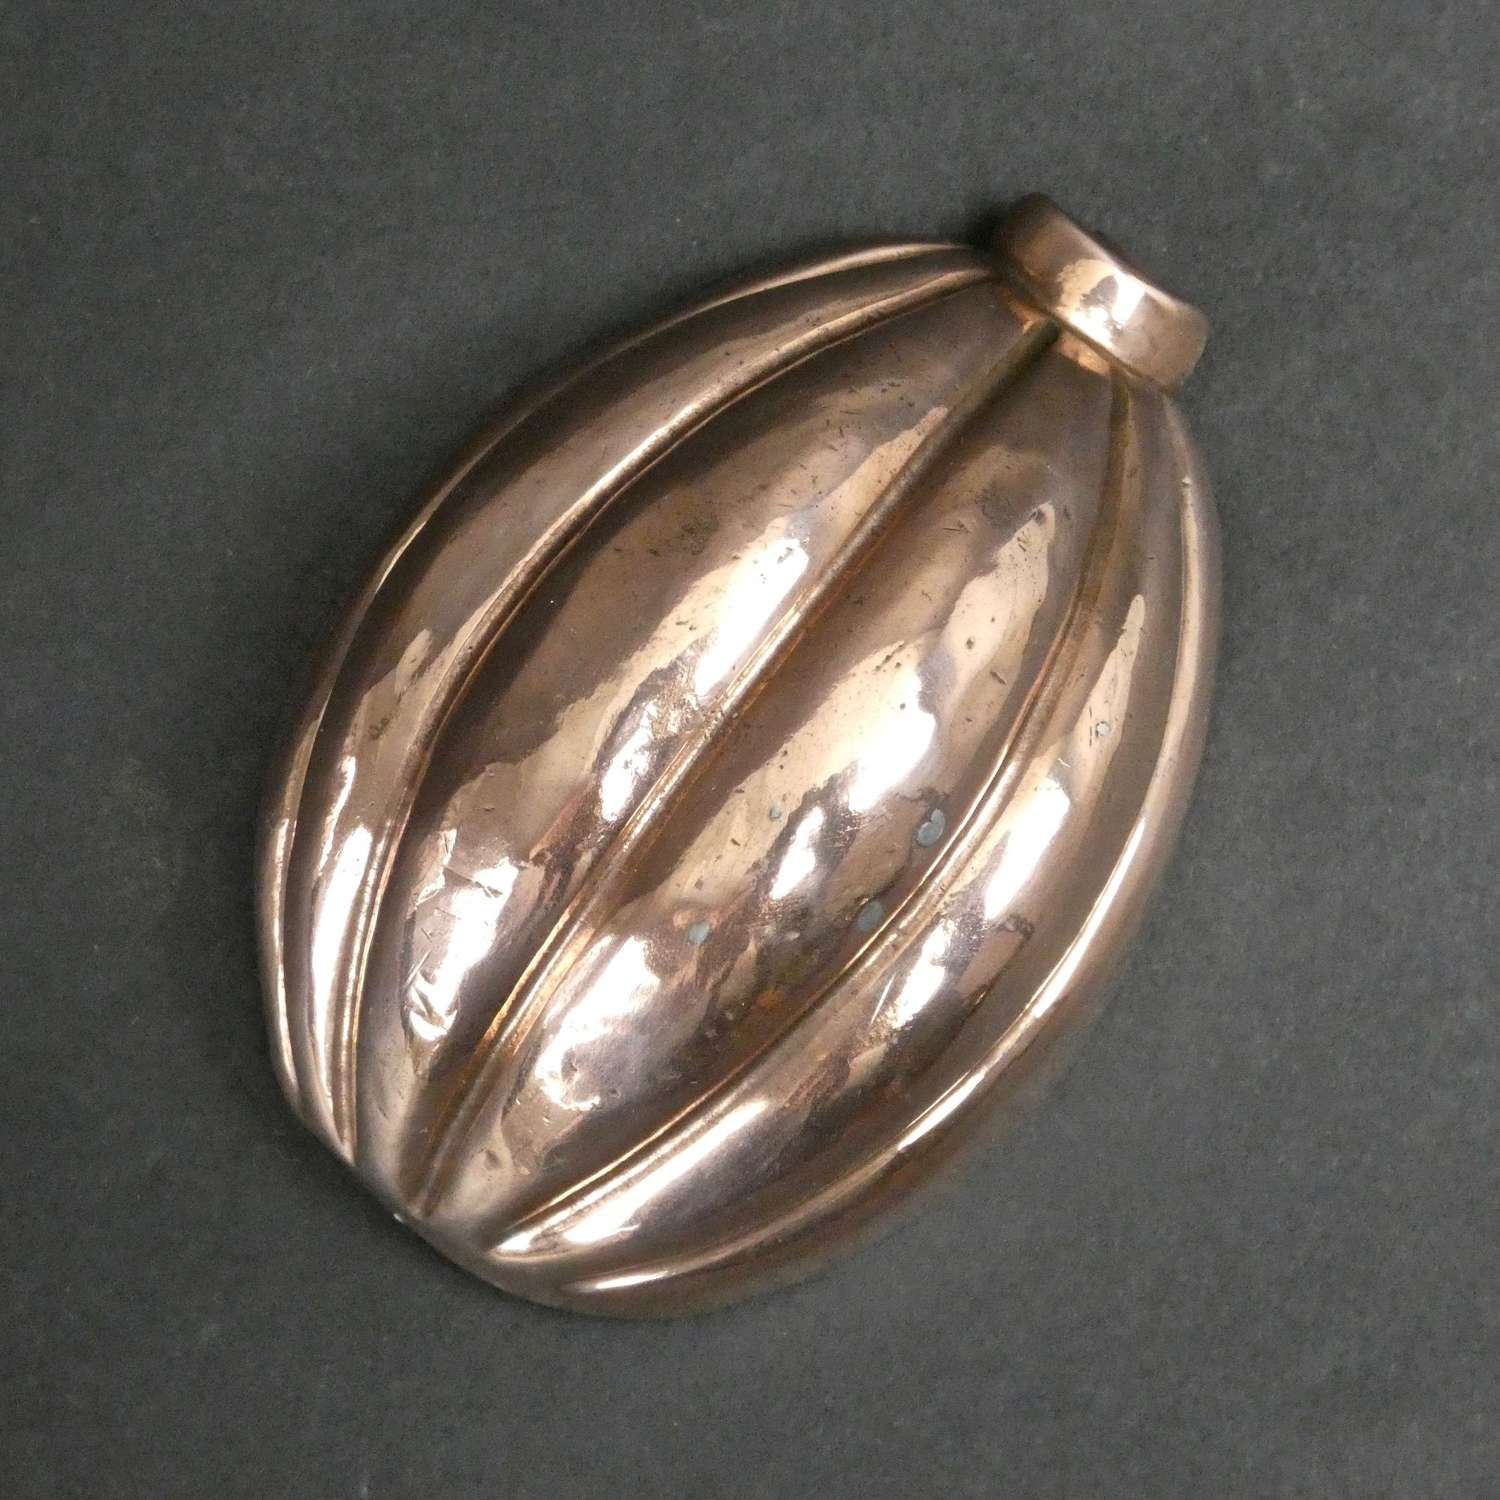 Miniature mould in the shape of a melon